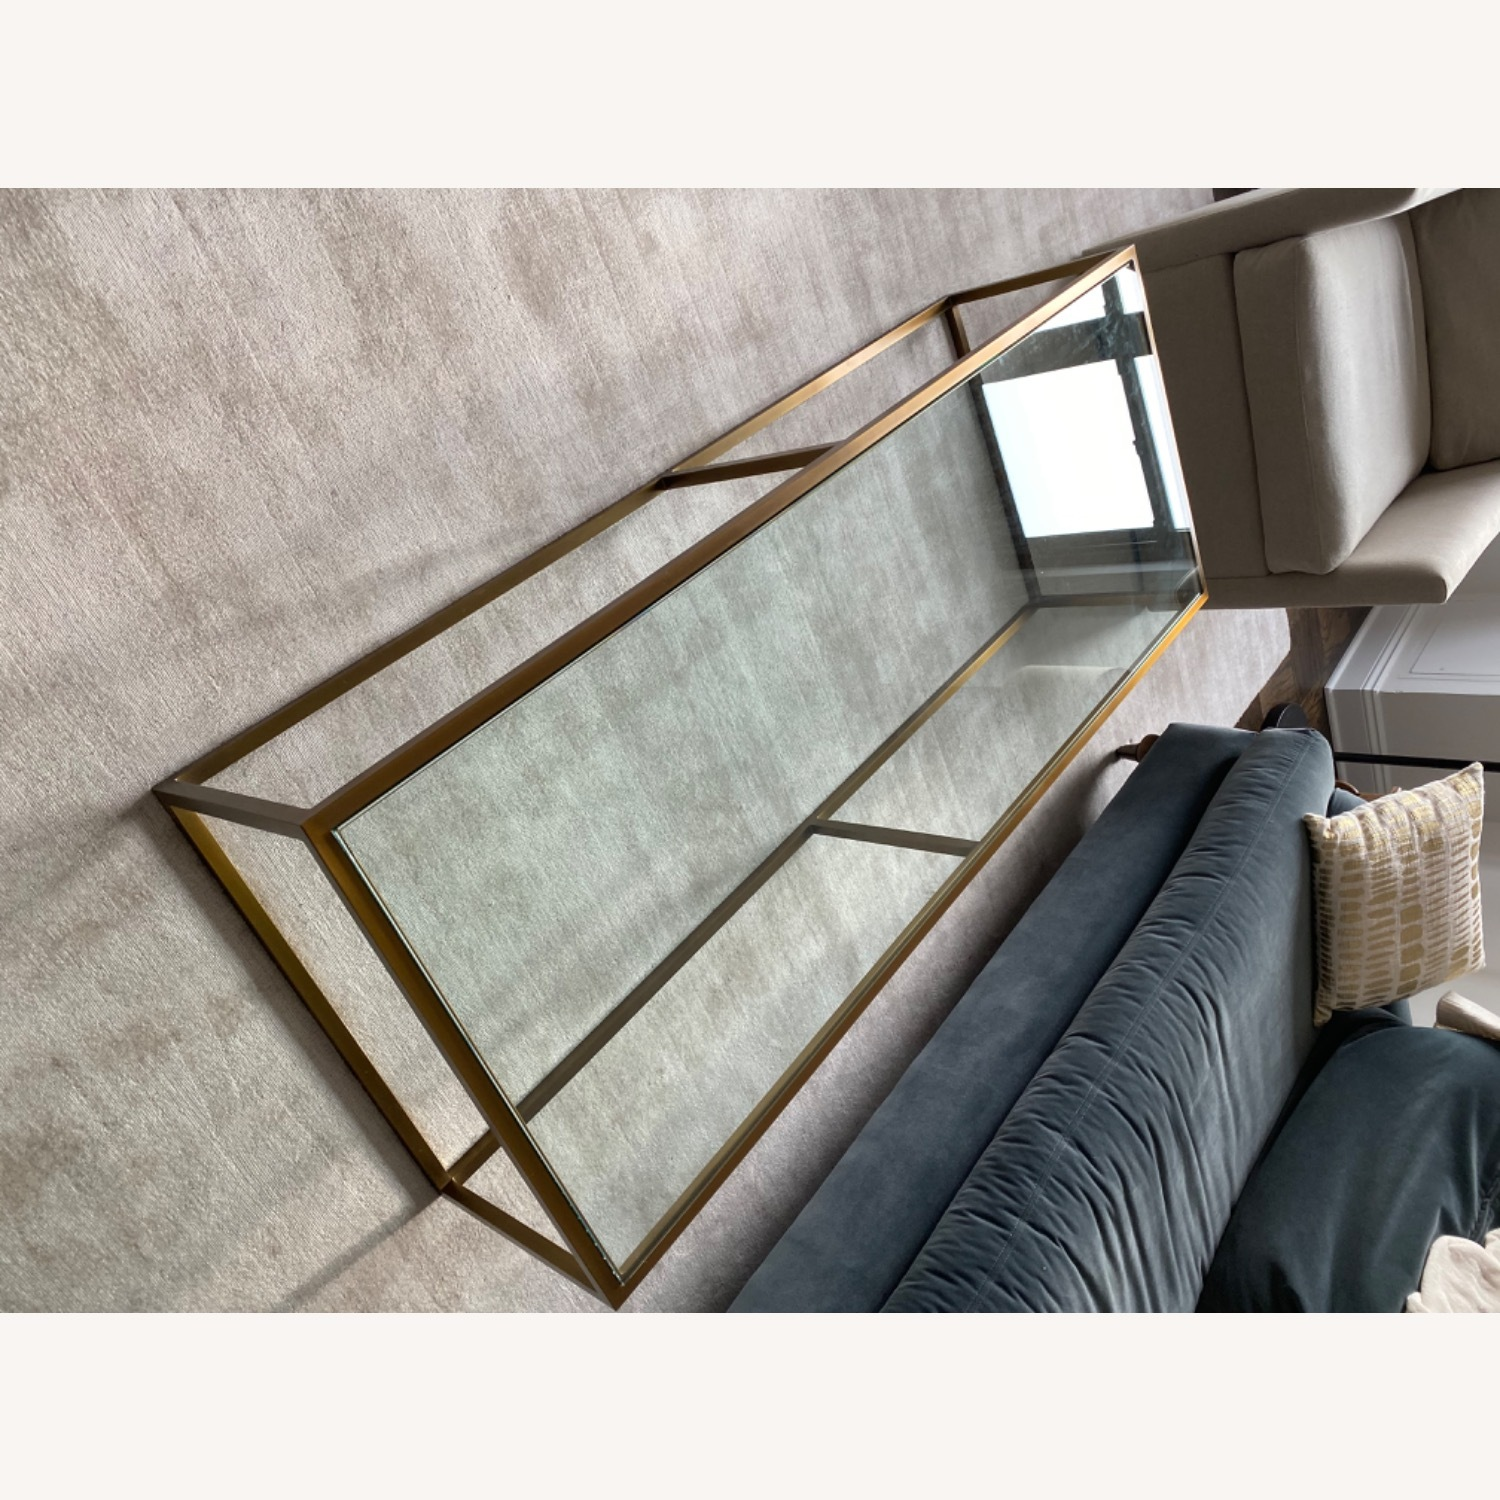 Restoration Hardware Burnished Brass Coffee Table - image-1